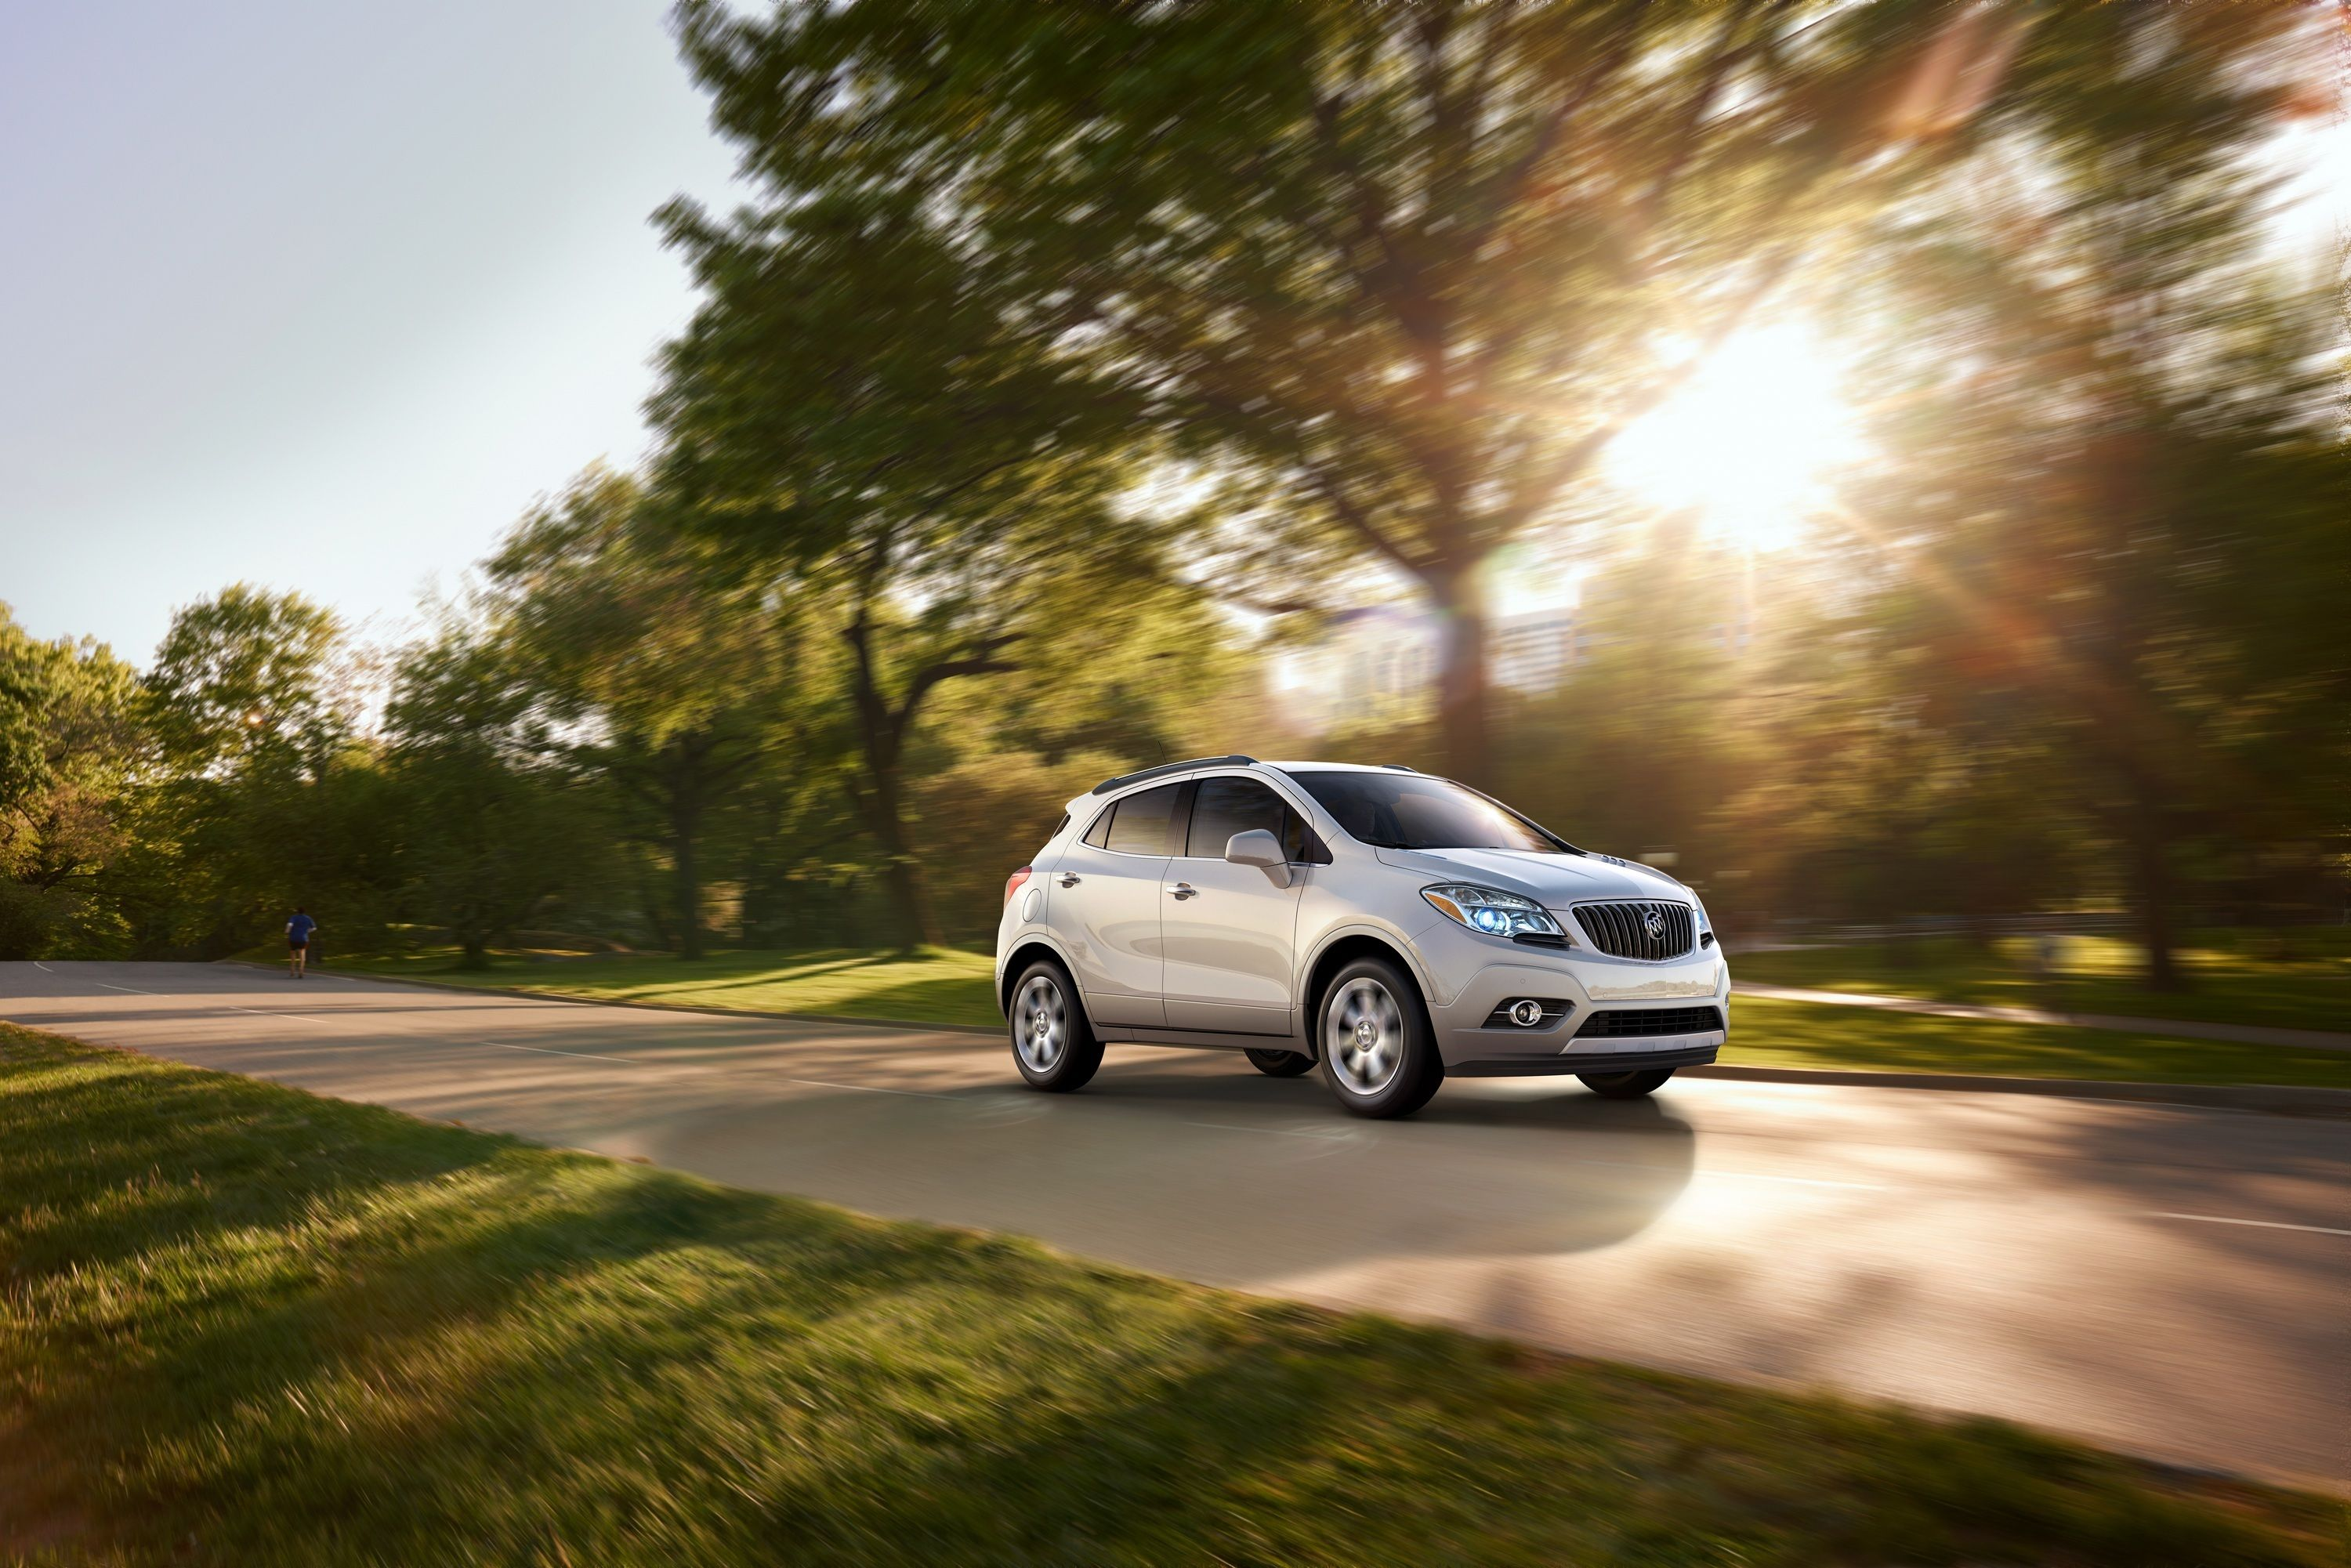 Reset the 2016 buick encore oil life display after oil change http